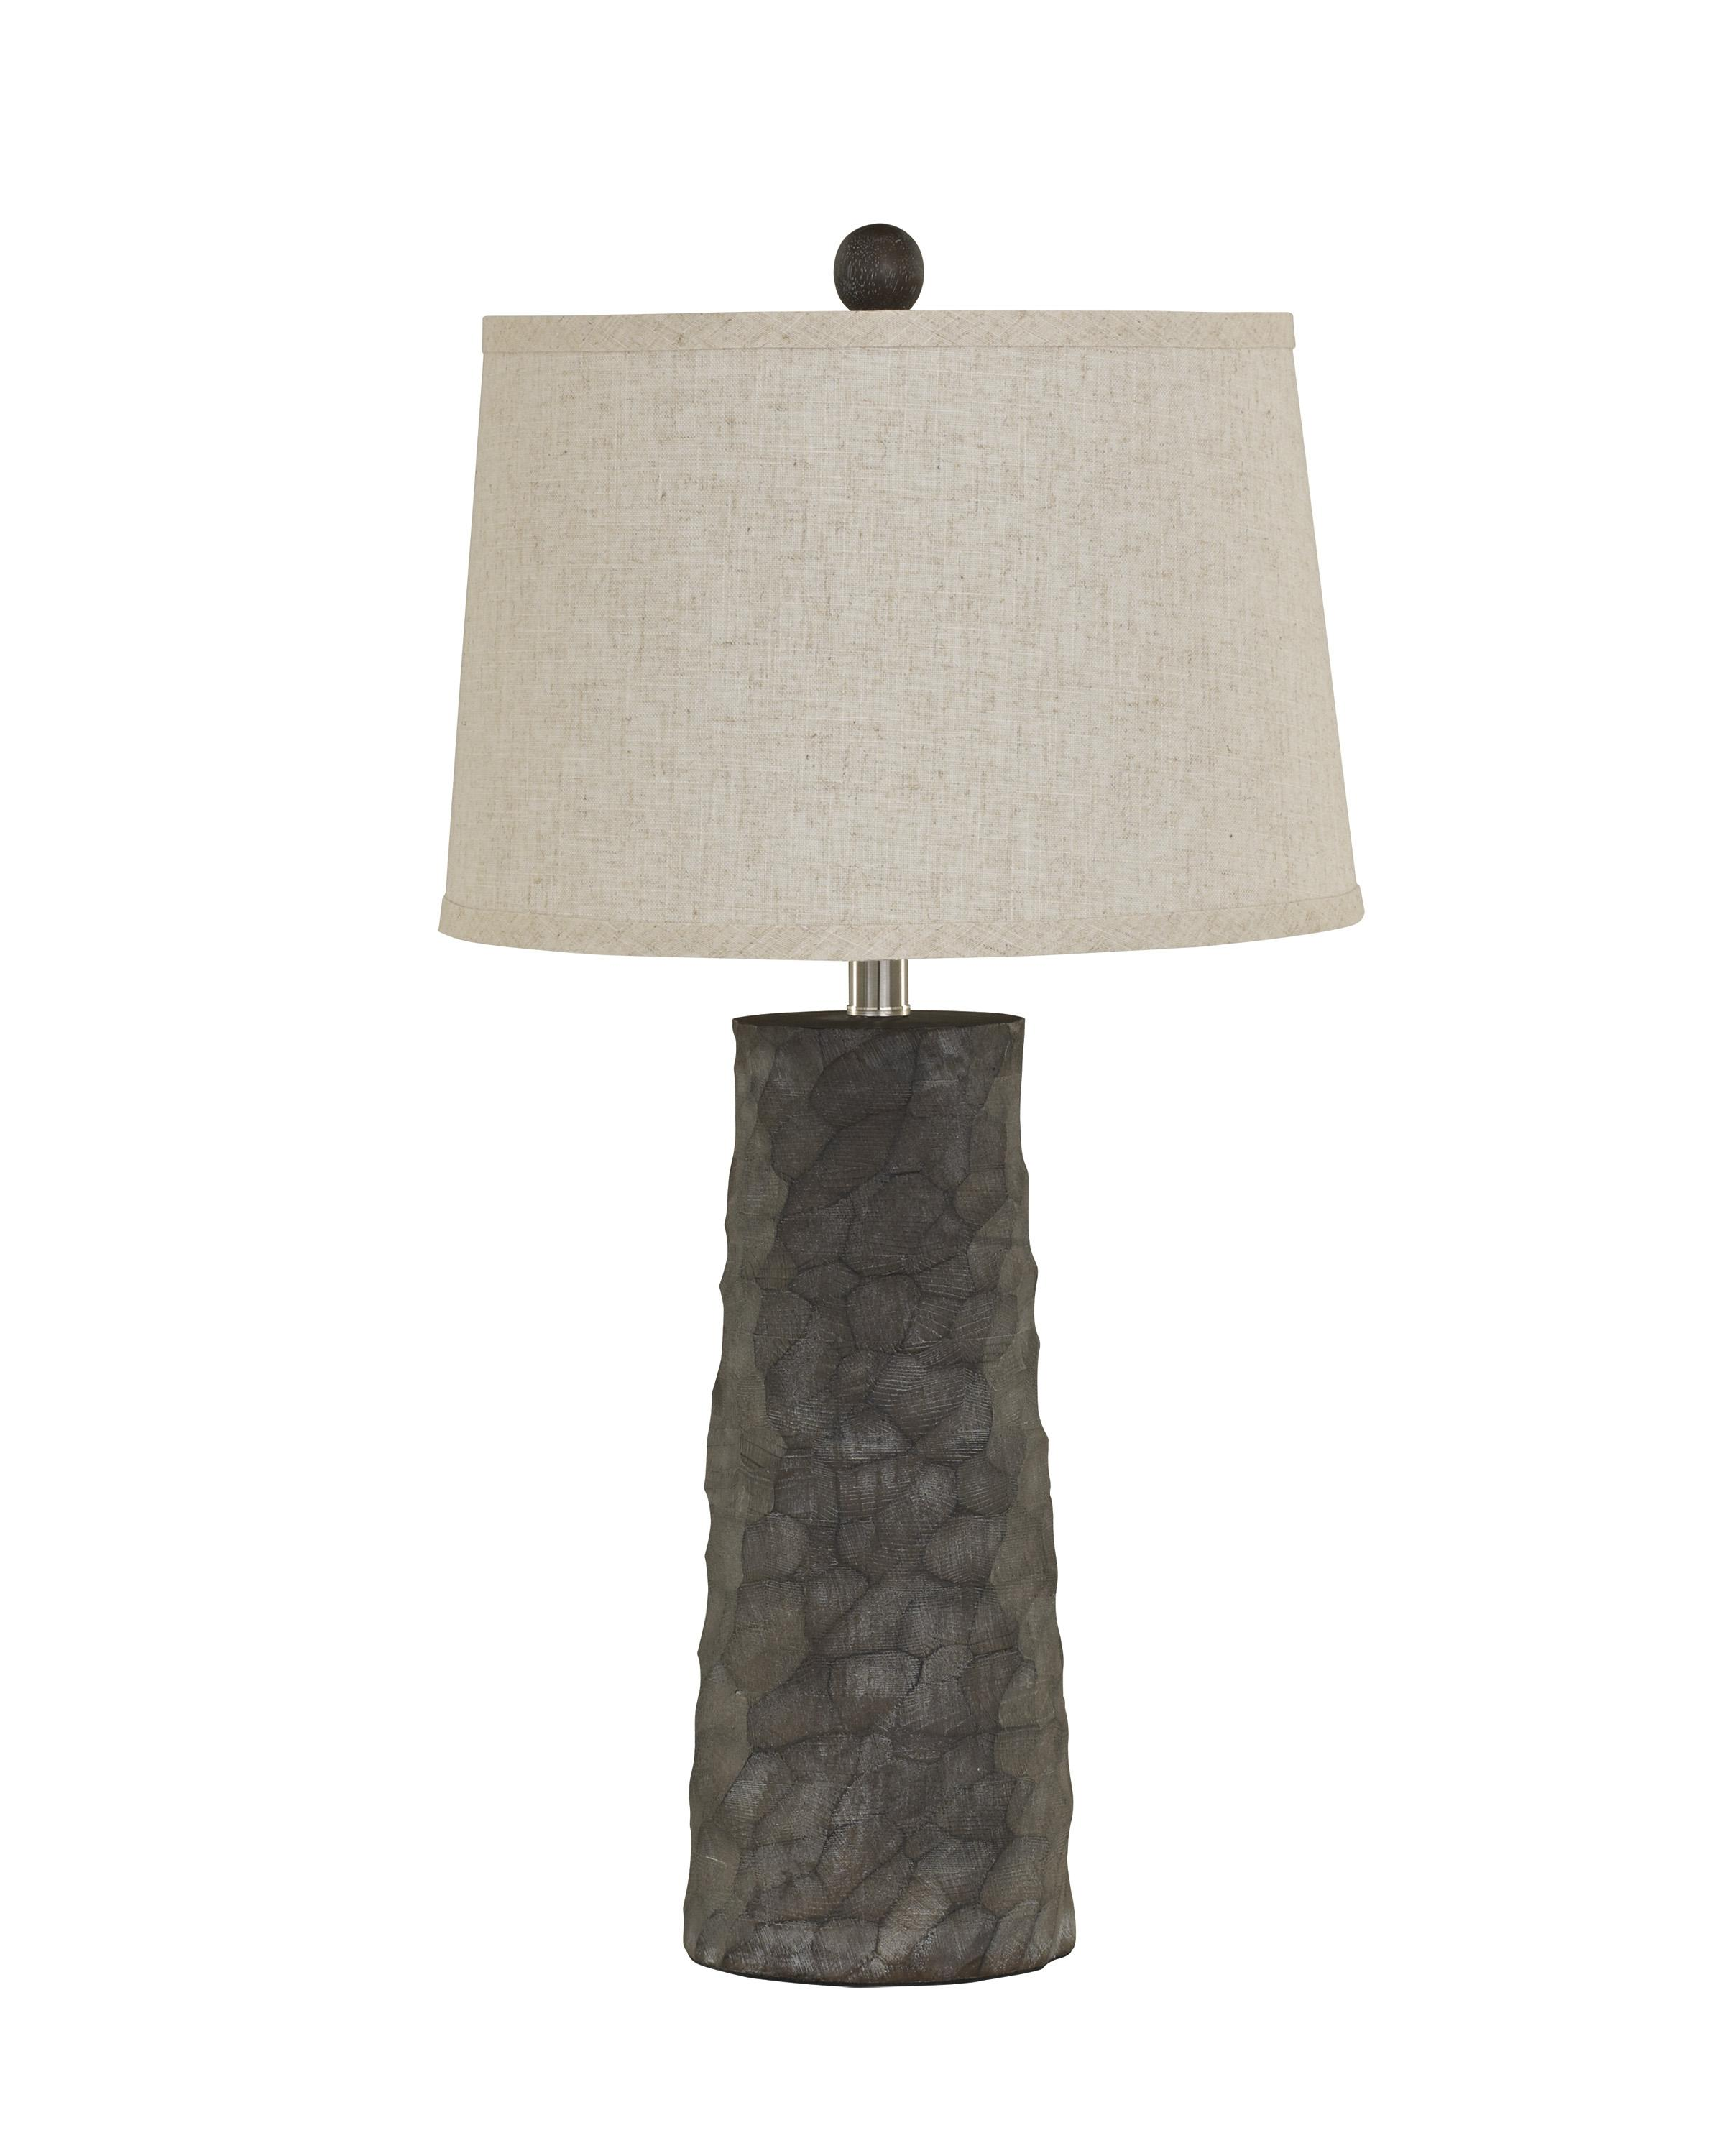 Lamps - Vintage Style Set of 2 Sinda Poly Table Lamps by Ashley (Signature Design) at Johnny Janosik